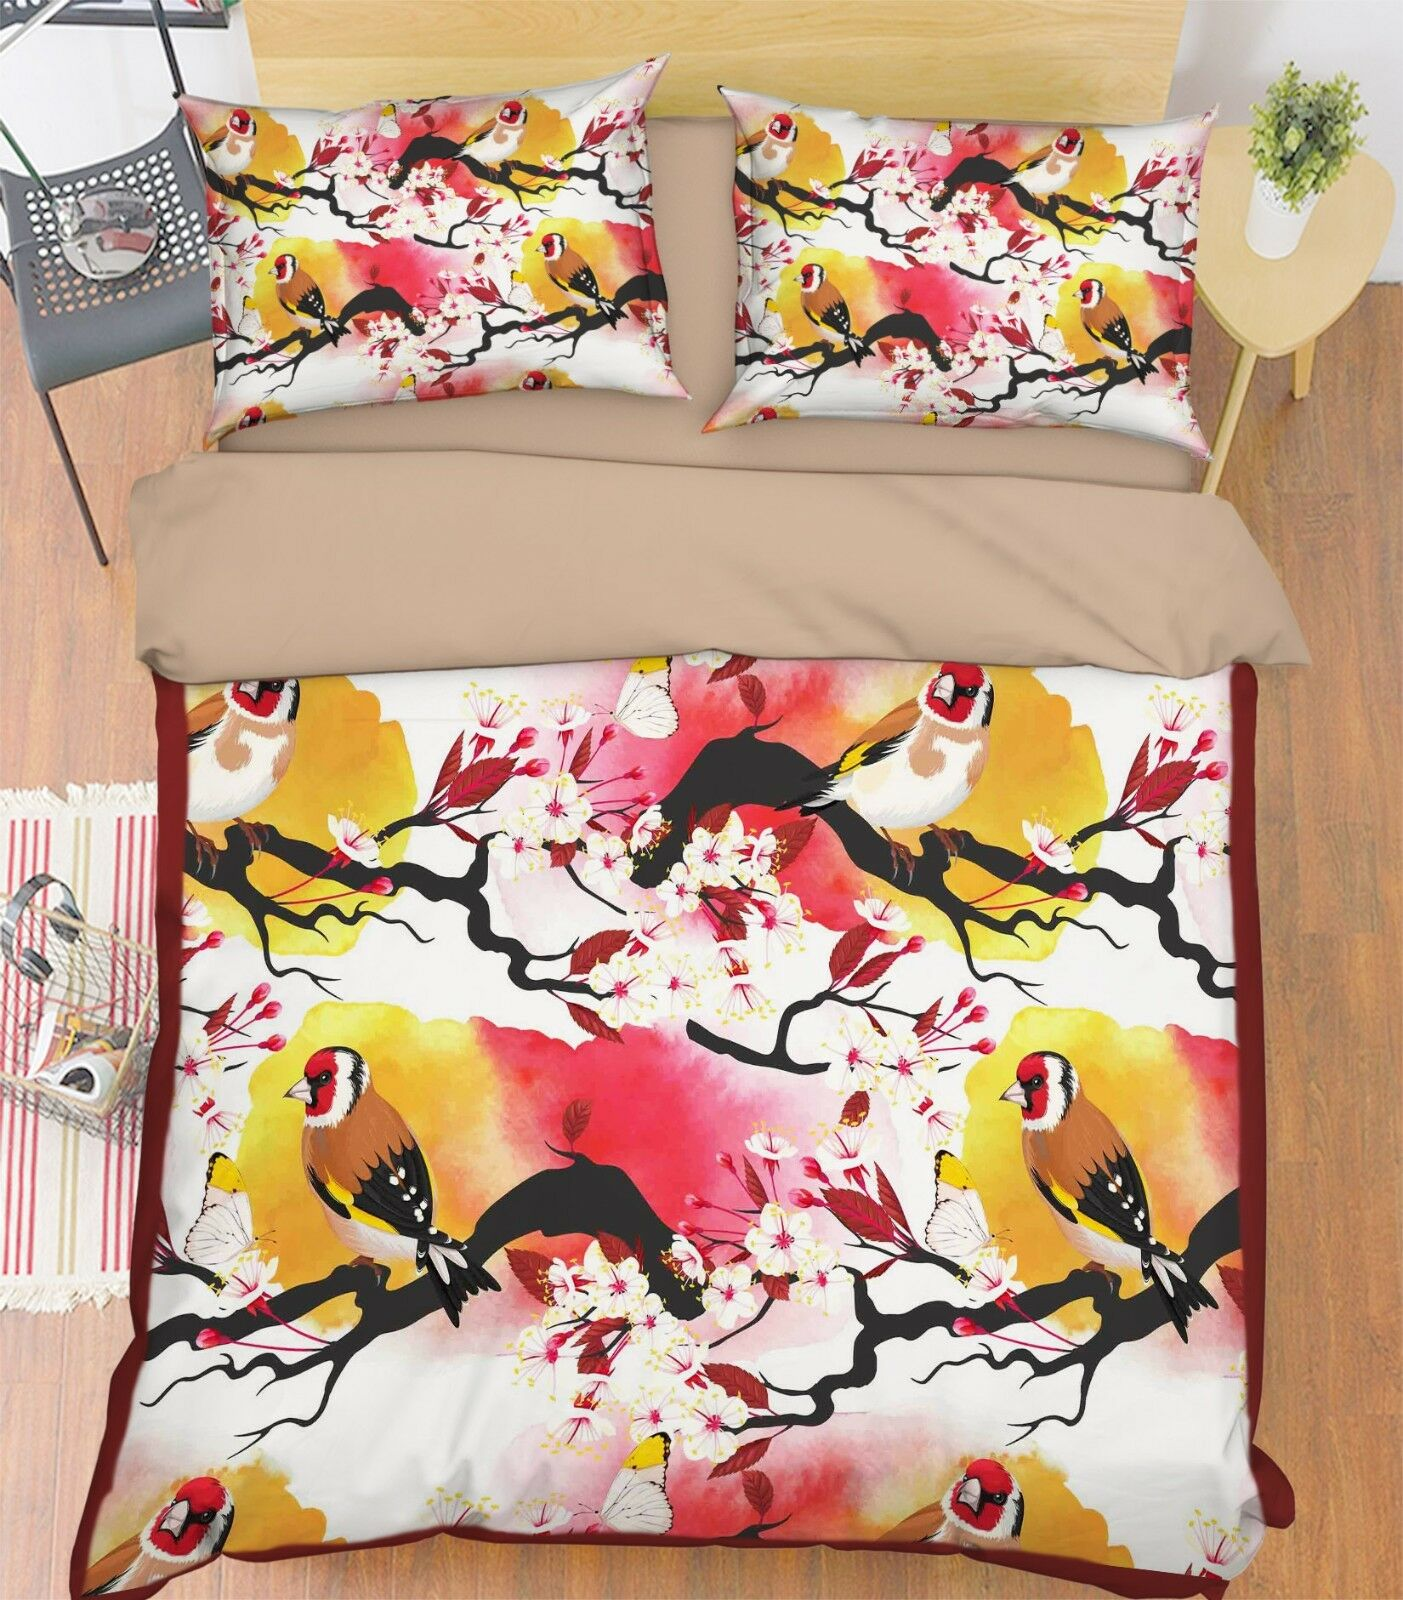 3D Bloom Bird 4 Bed Pillowcases Quilt Duvet Cover Set Single Queen King AU Carly